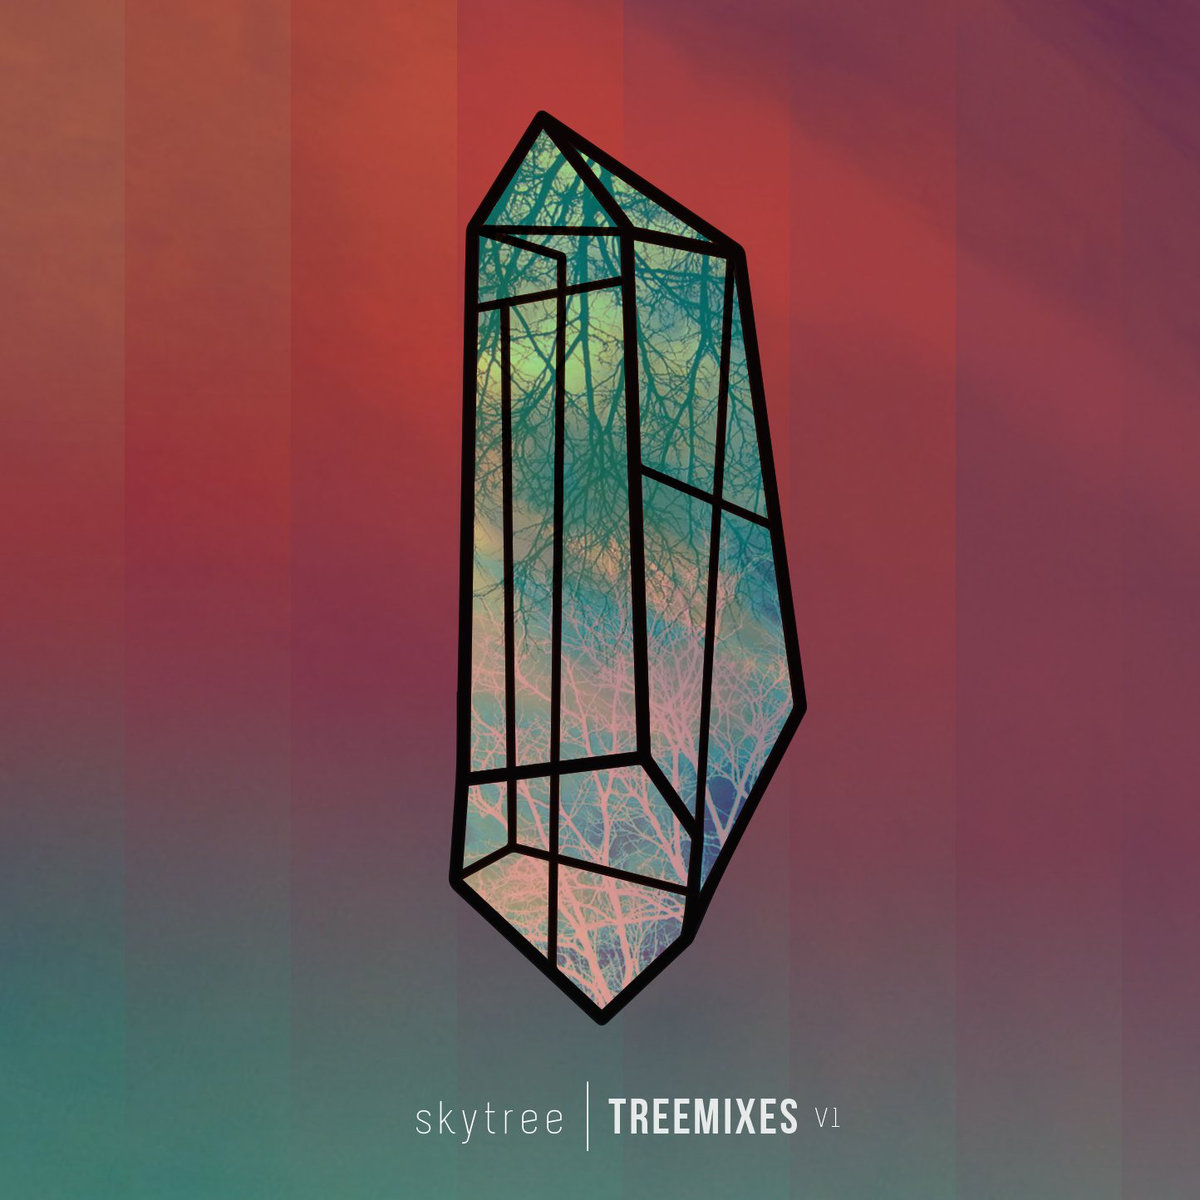 Skytree - Treemixes V1